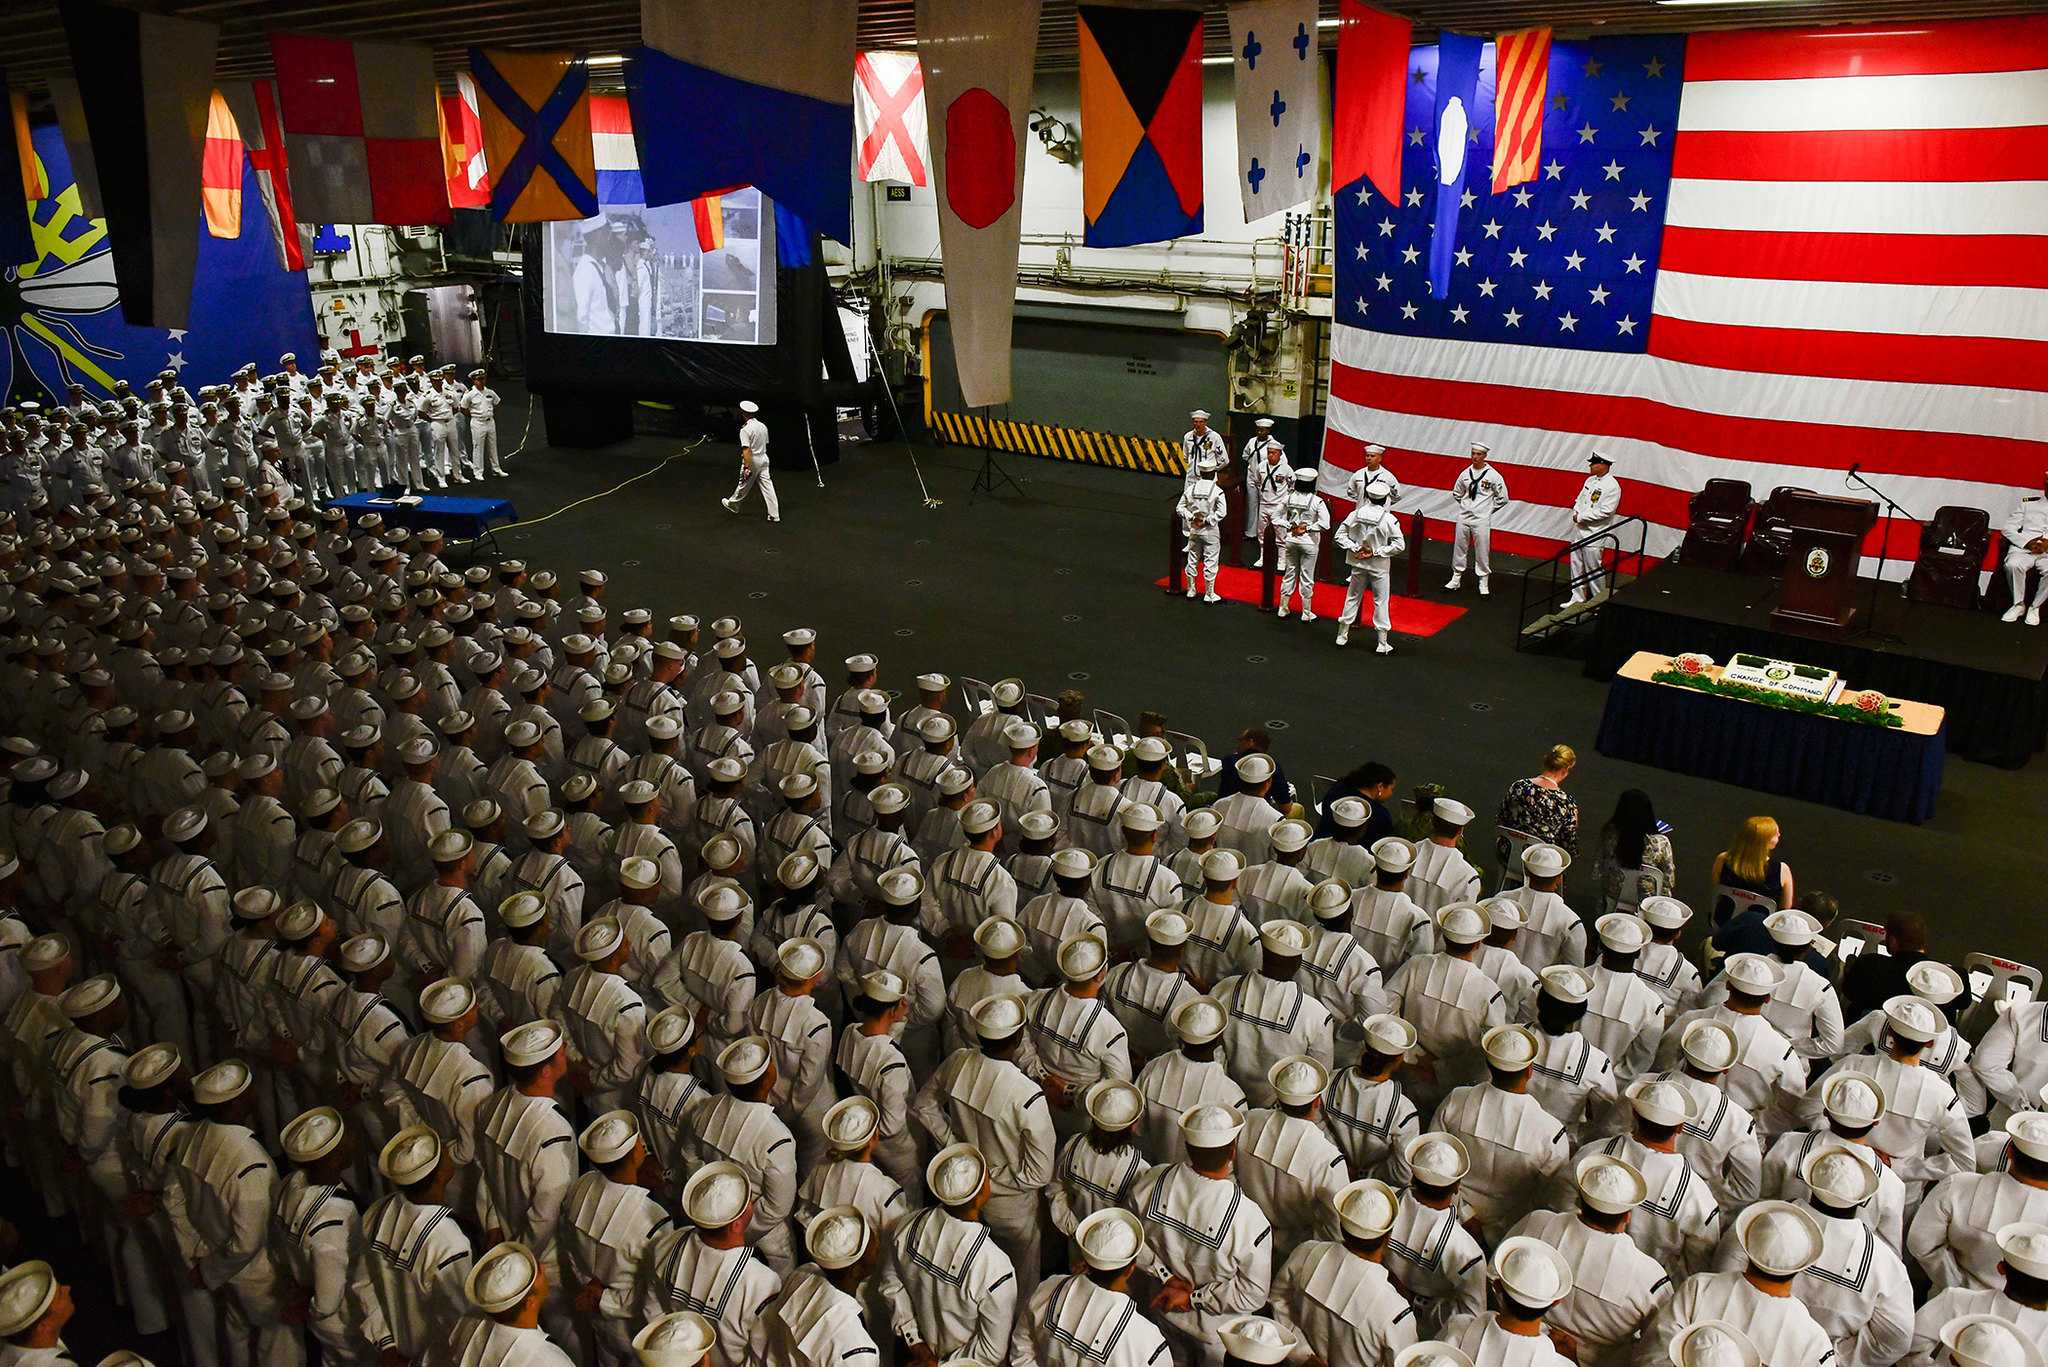 Sailors stand at parade rest during a change-of-command ceremony aboard the amphibious assaut ship USS Wasp (LHD 1) on April 13, 2019, at Subic Bay, Philippines. (Mass Communication Specialist 3rd Class Benjamin F. Davella III/Navy)